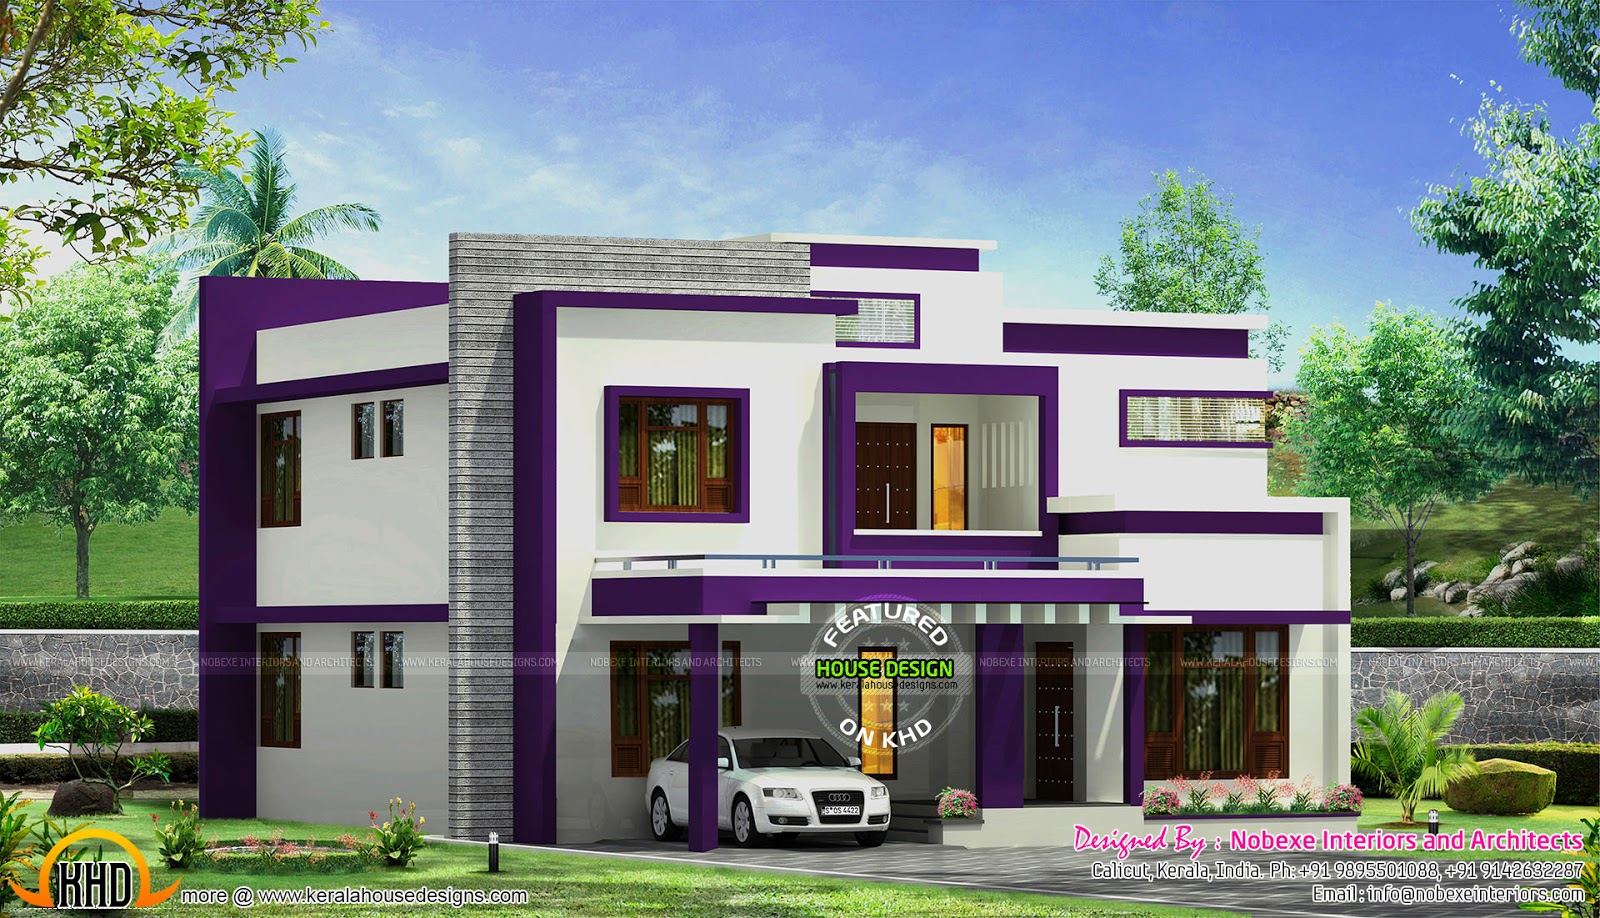 Contemporary home design by nobexe interiors kerala home for Modern design home plans